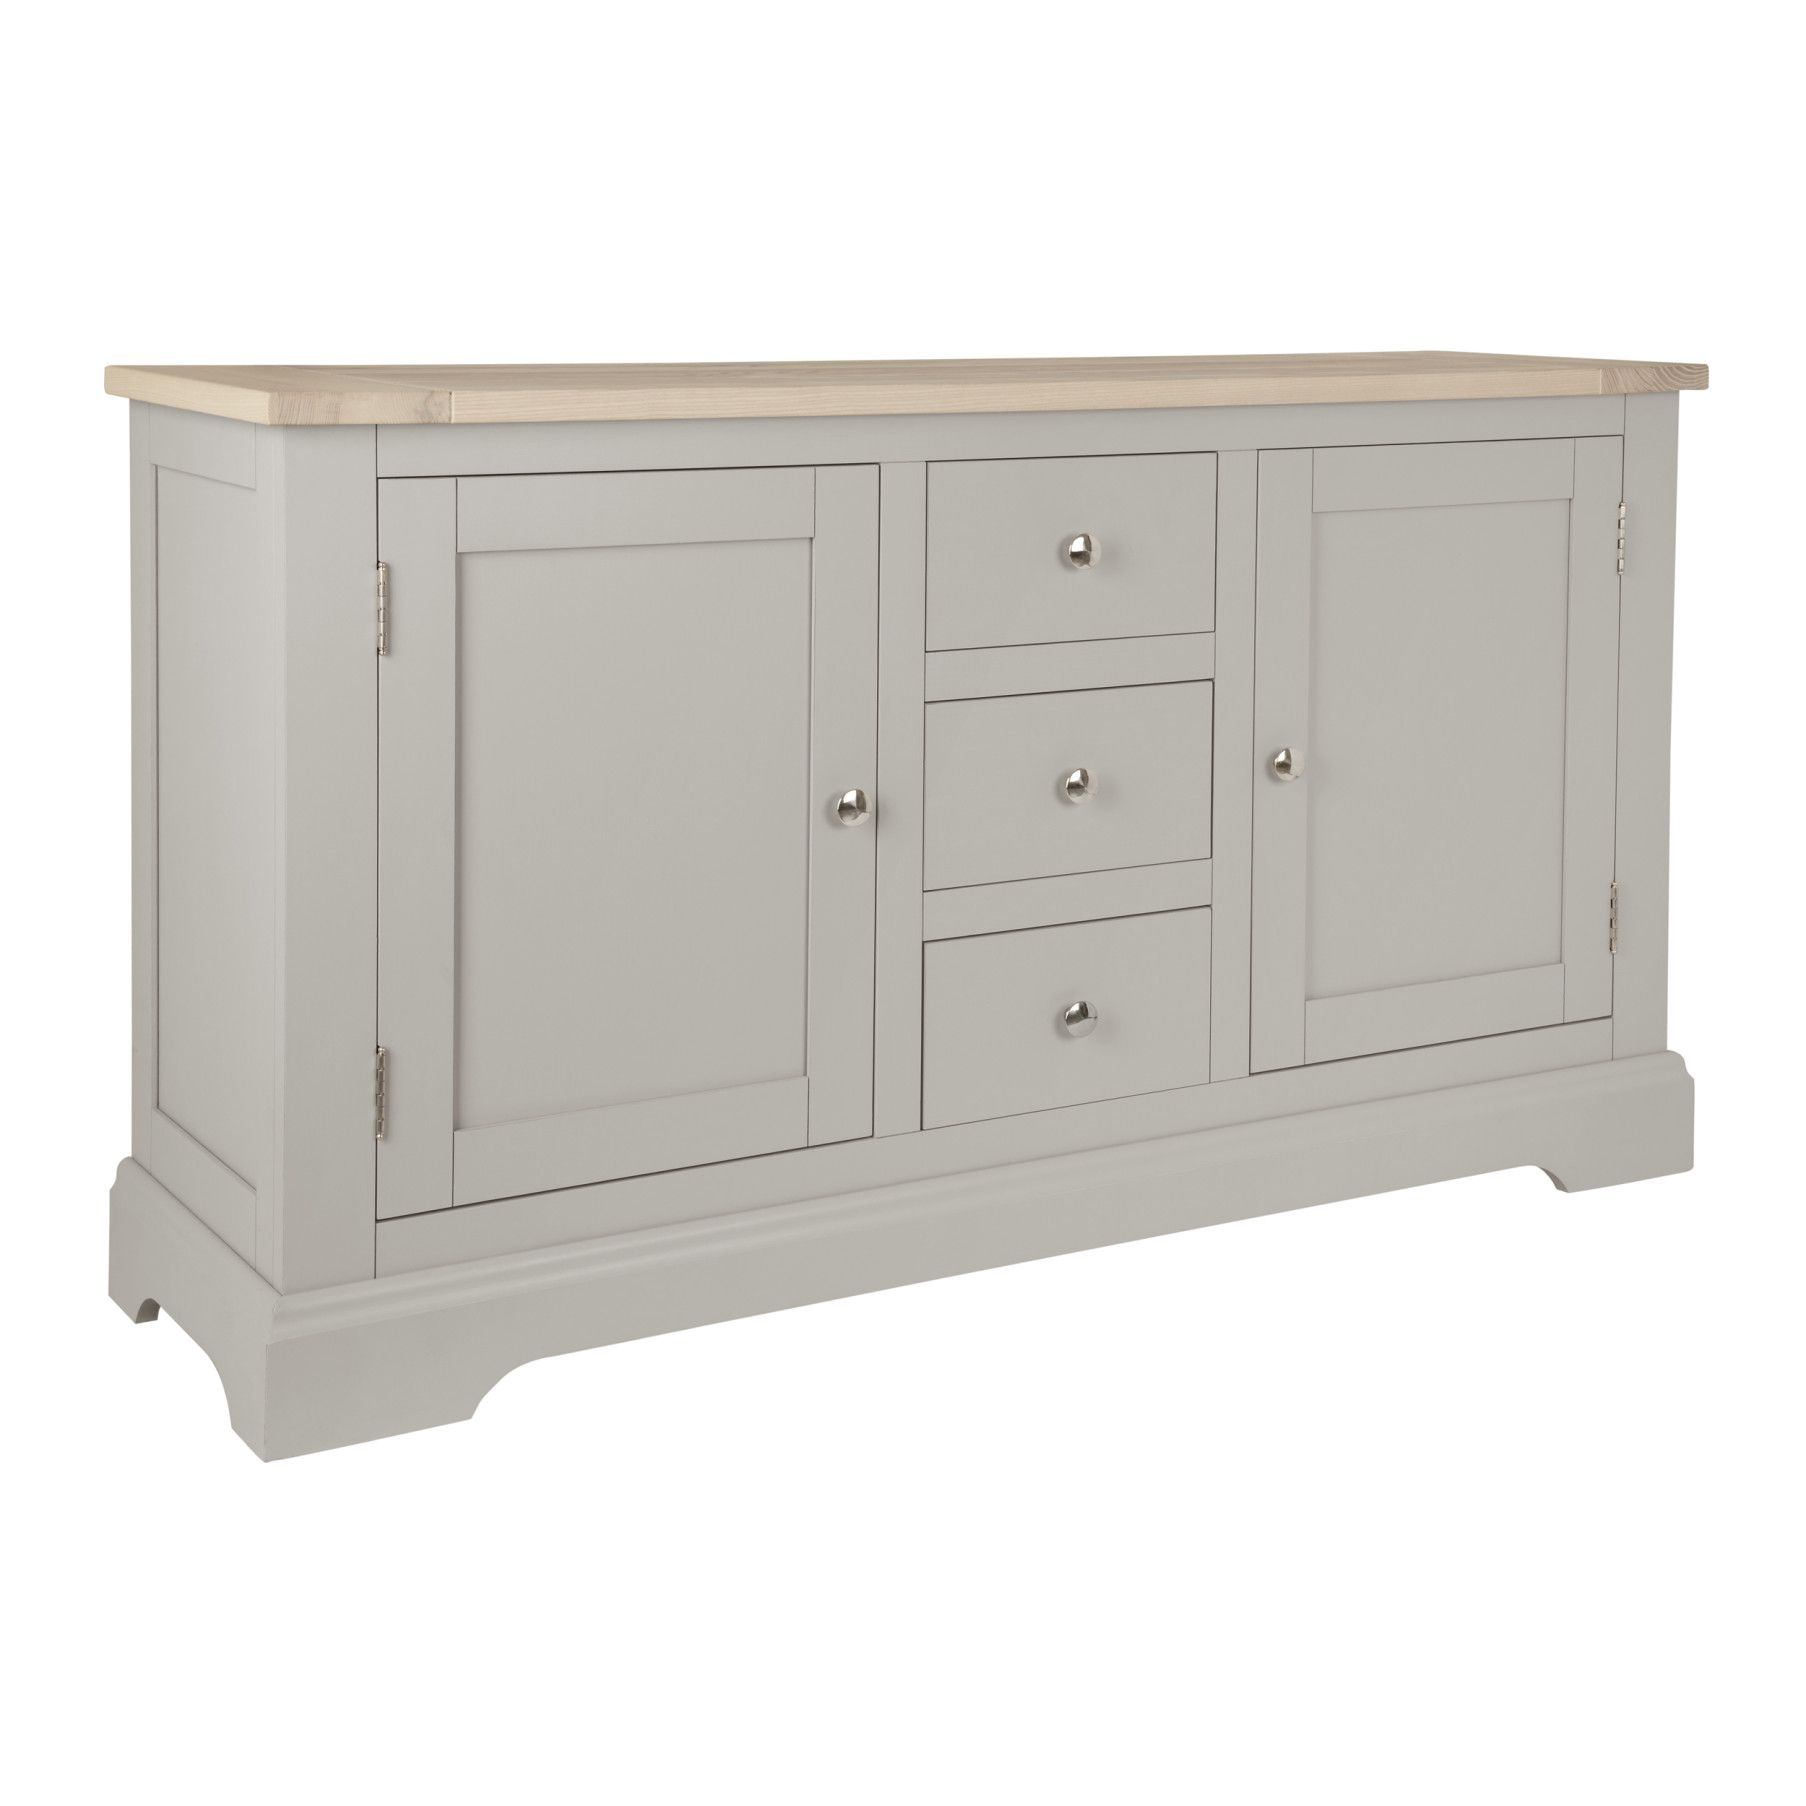 Made To Order Furniture - Dorset Pale French Grey 2 Door 3 Drawer inside Oil Pale Finish 4-Door Sideboards (Image 18 of 30)